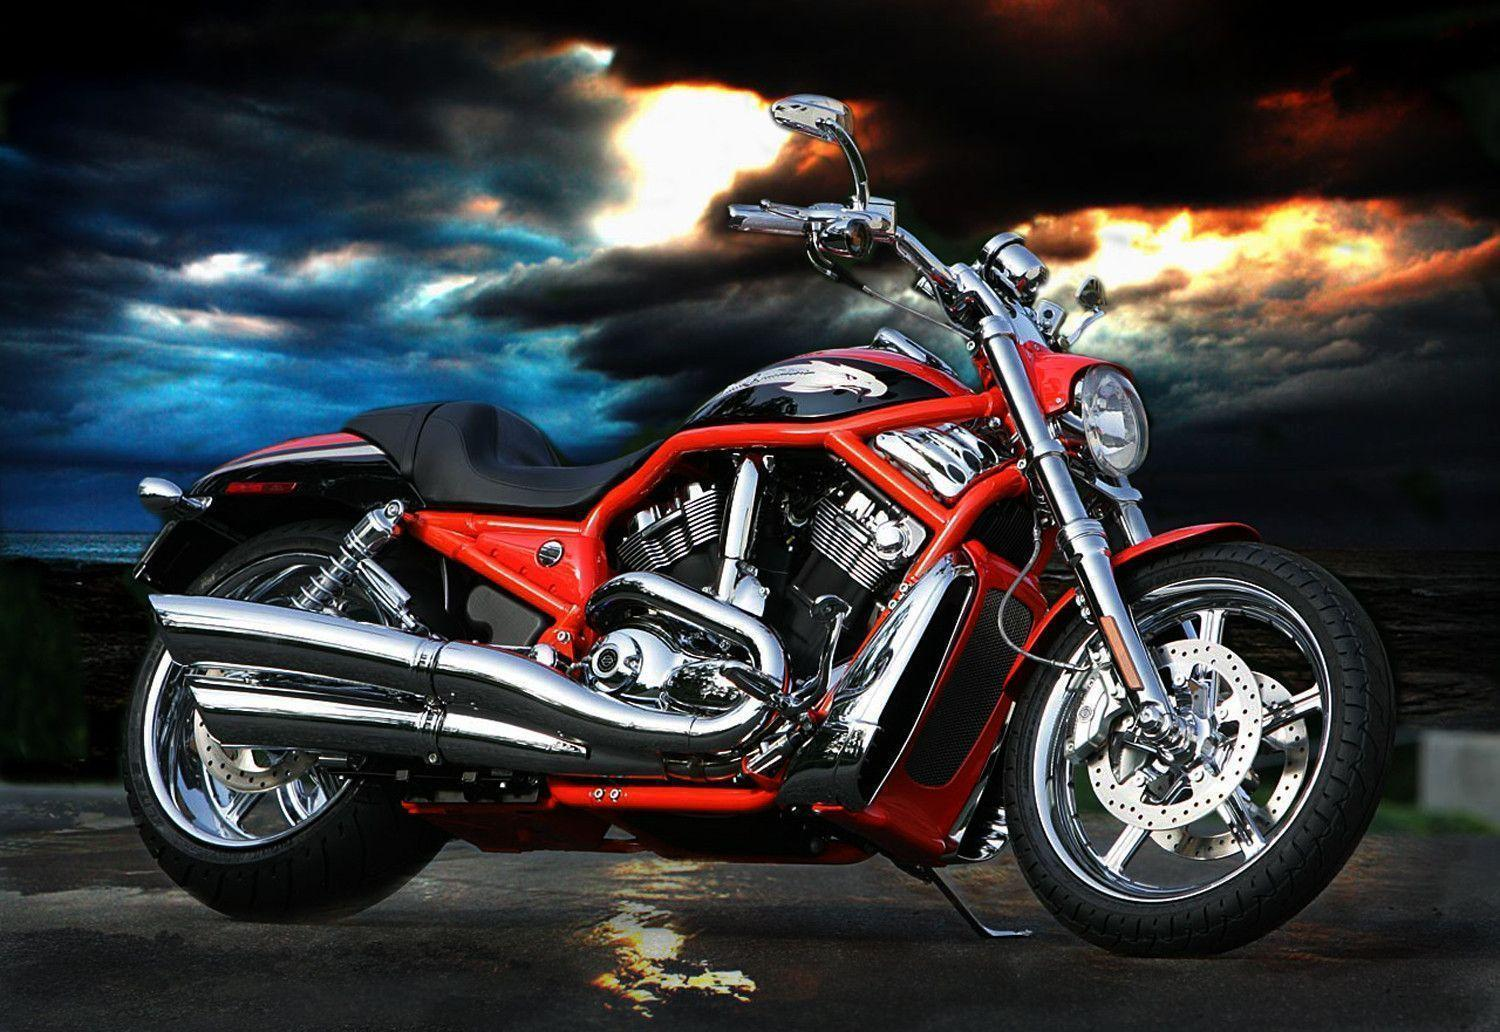 Harley Davidson Wallpaper Download